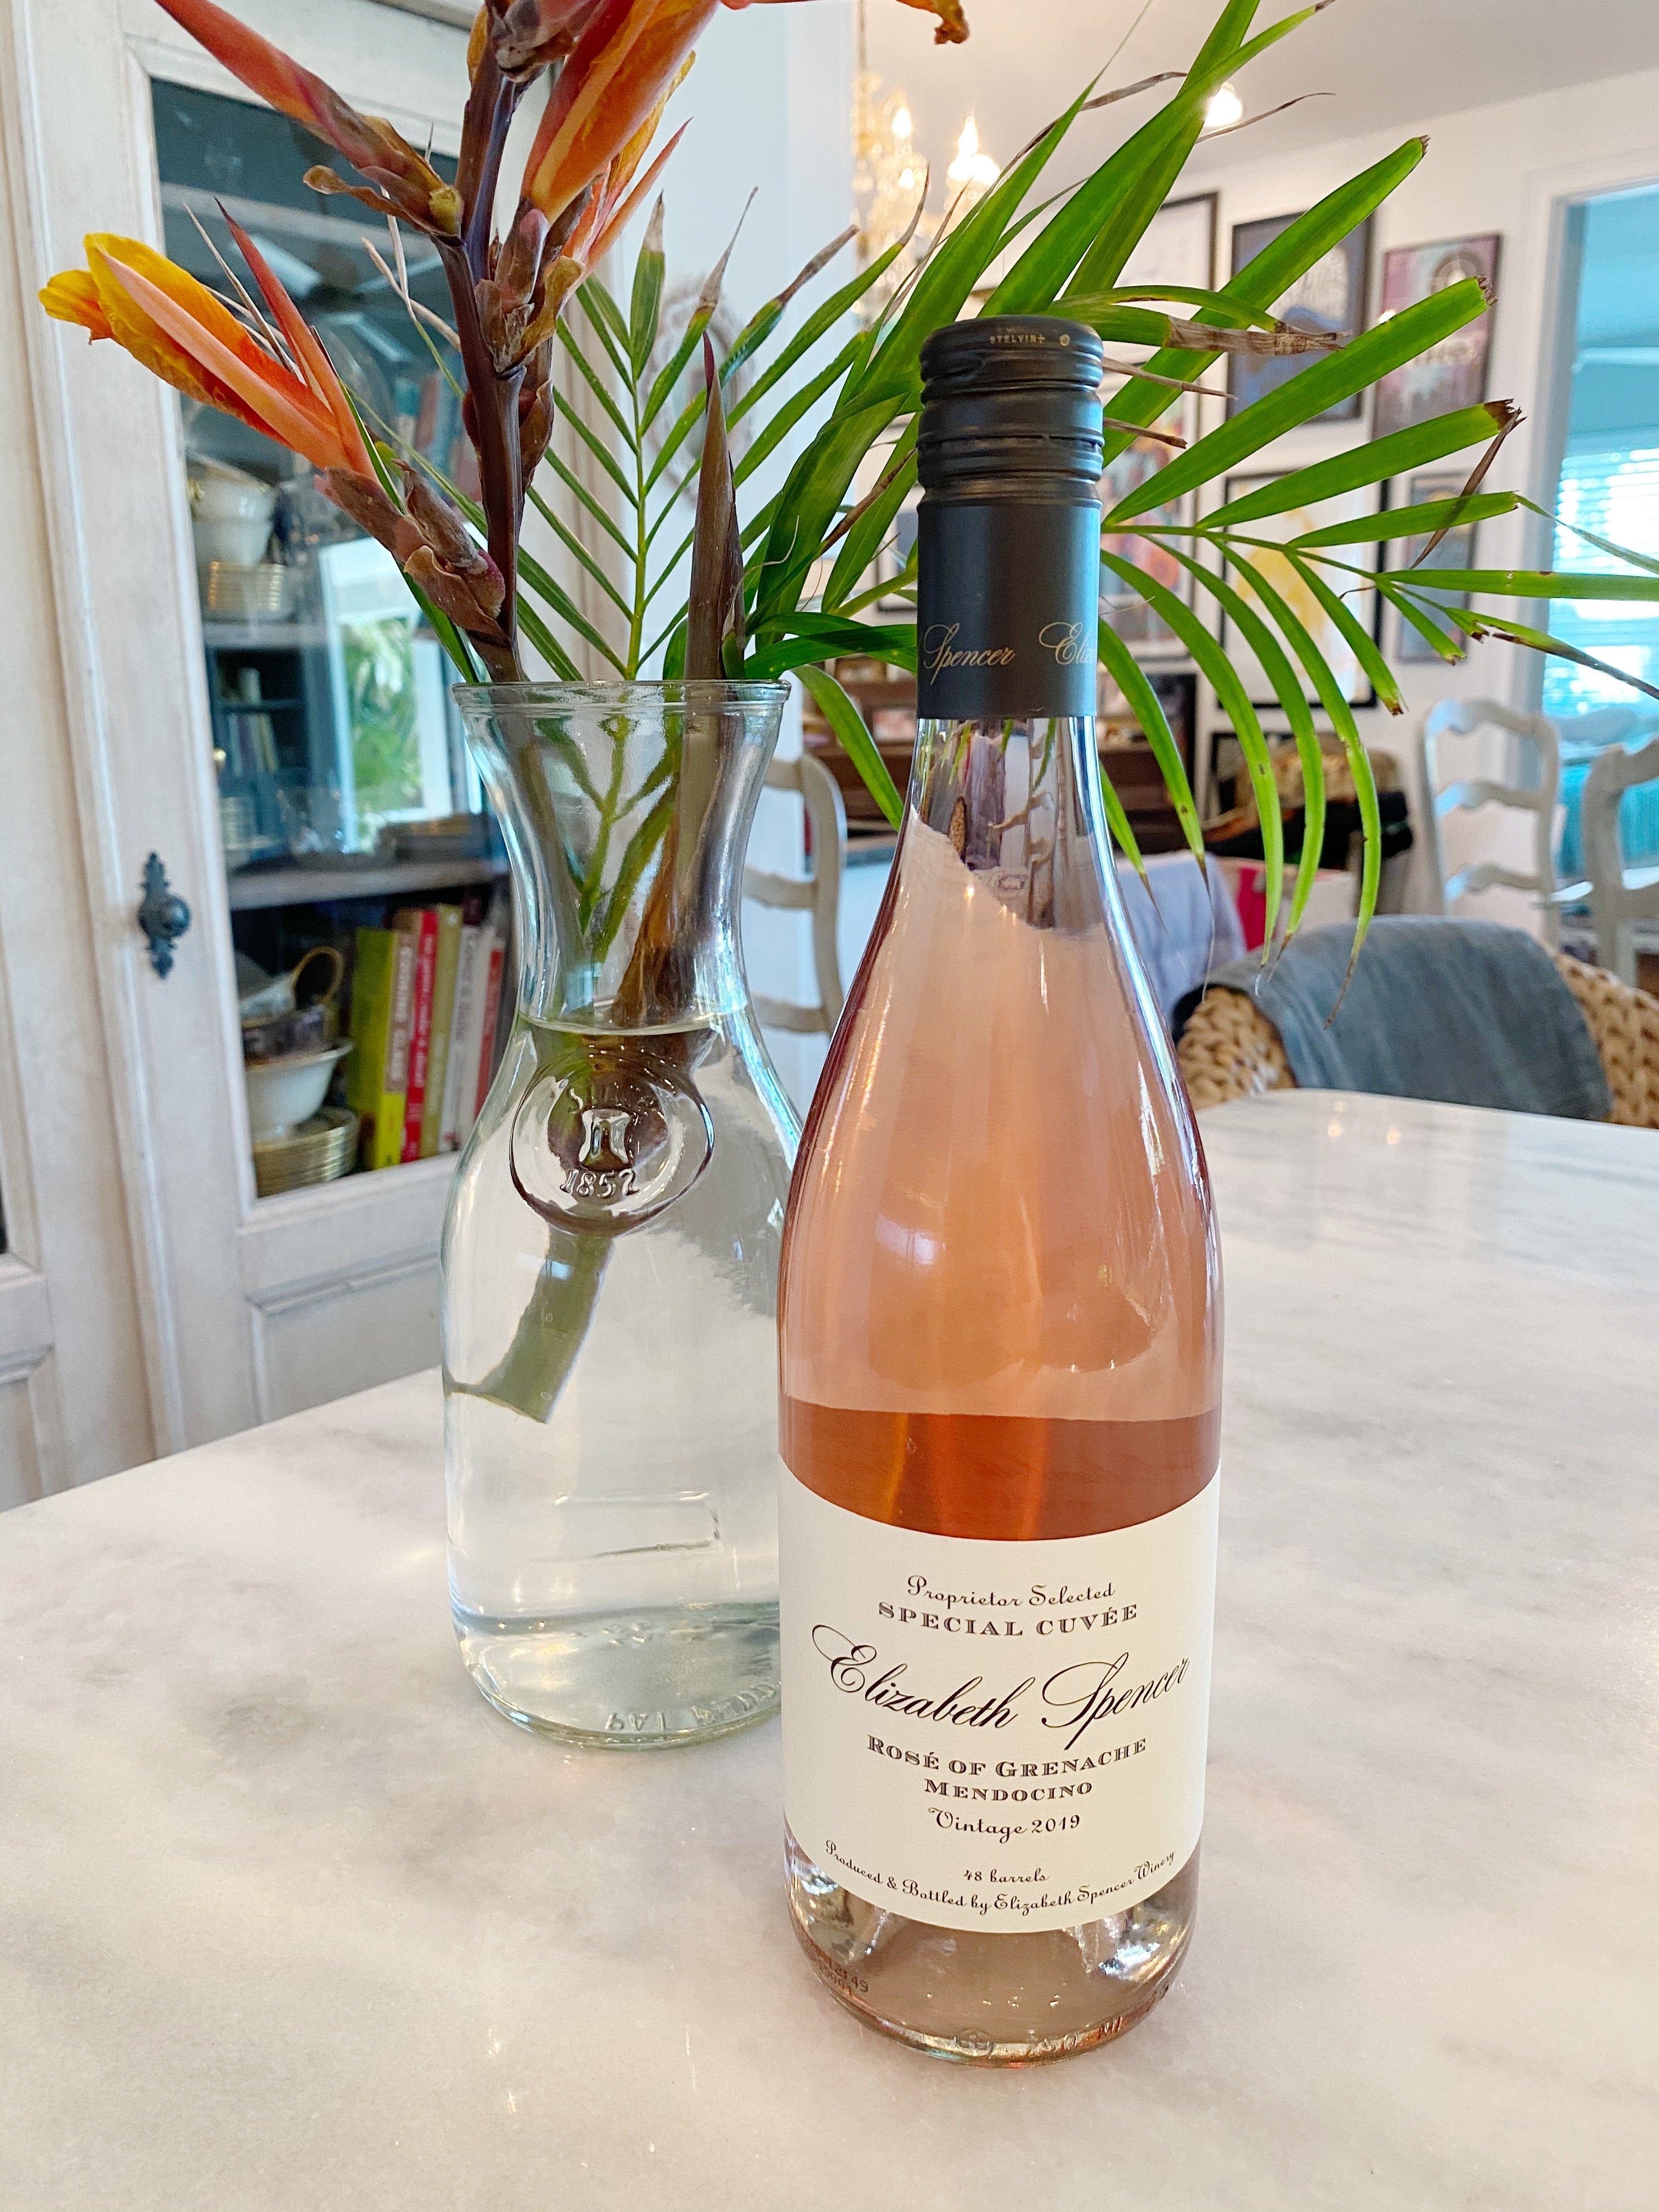 Elizabeth Spencer 2019 Rose of Grenache